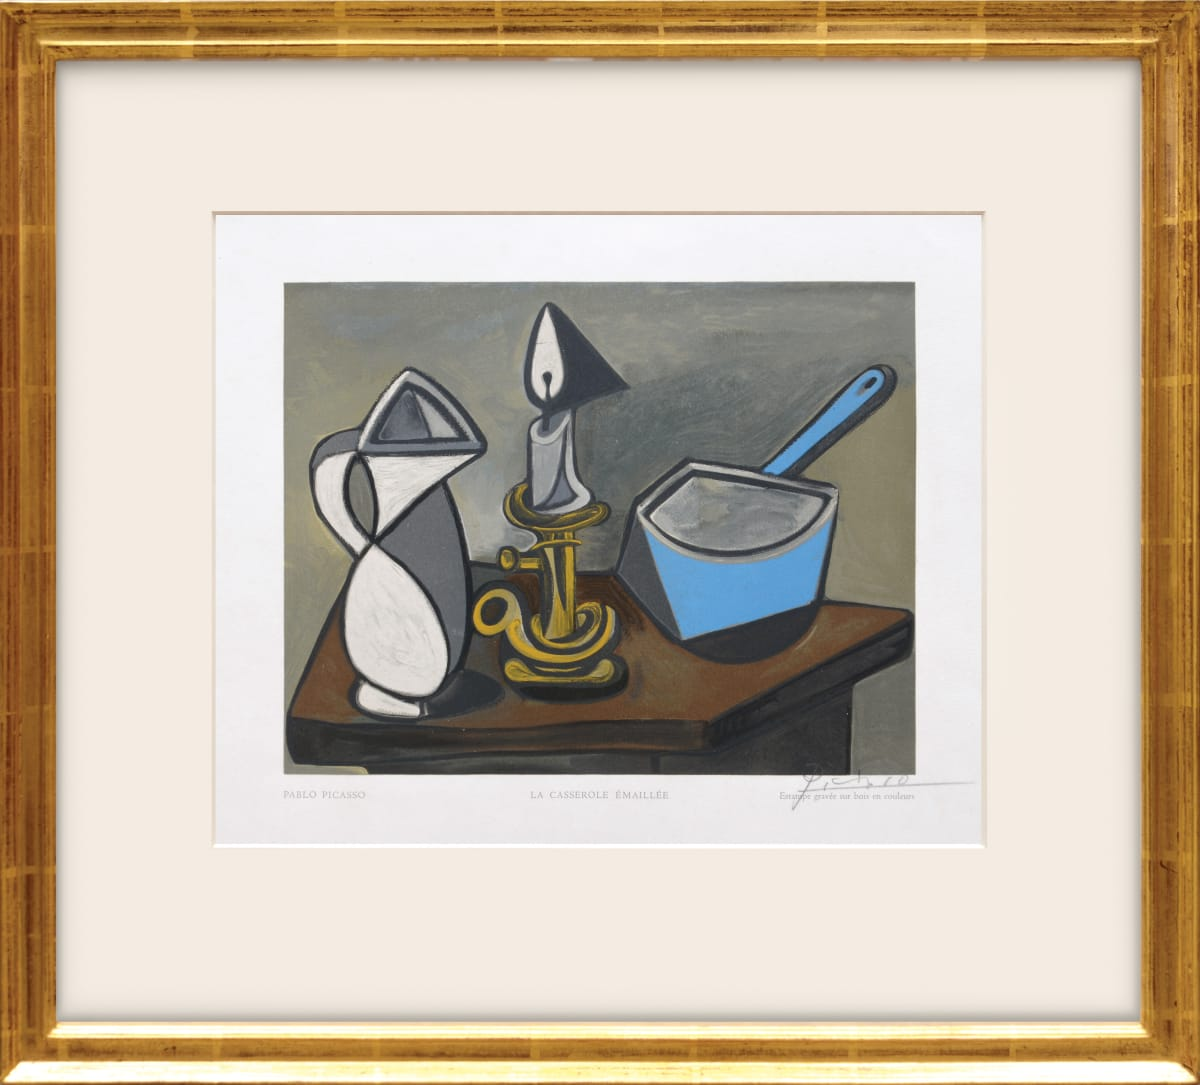 Pablo Picasso, La Casserole émaillée. (The enameled casserole), 1950 Wood engraving in colours on Van Gelder Zonen paper 23.3 x 29.7 cm Edition of 150 One of 12 prints by various artists from the Estampes portfolio by Robert Rey.